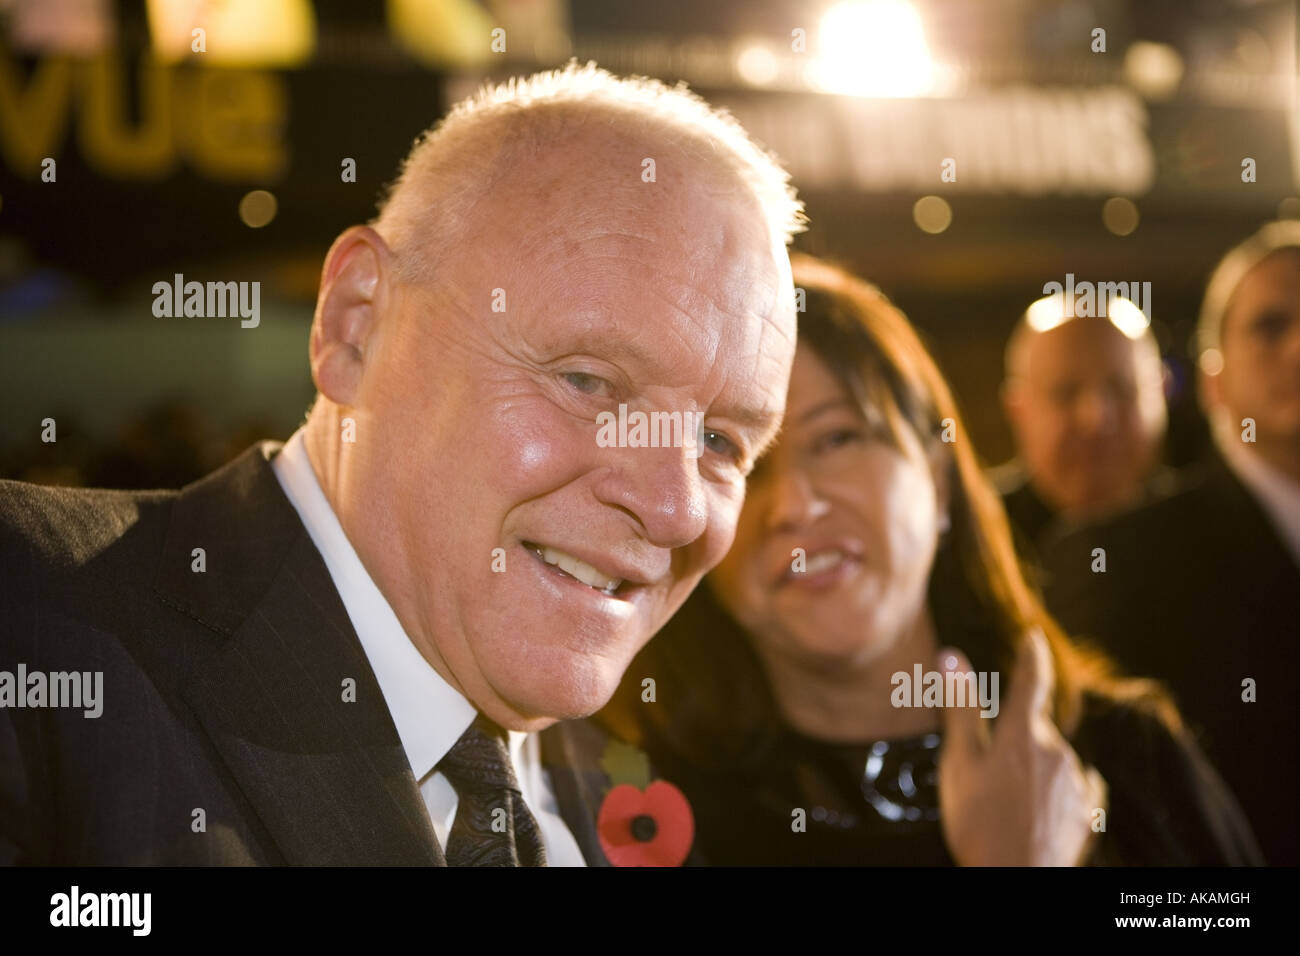 antony hopkins at beo wulf film premiere european leicester square london - Stock Image